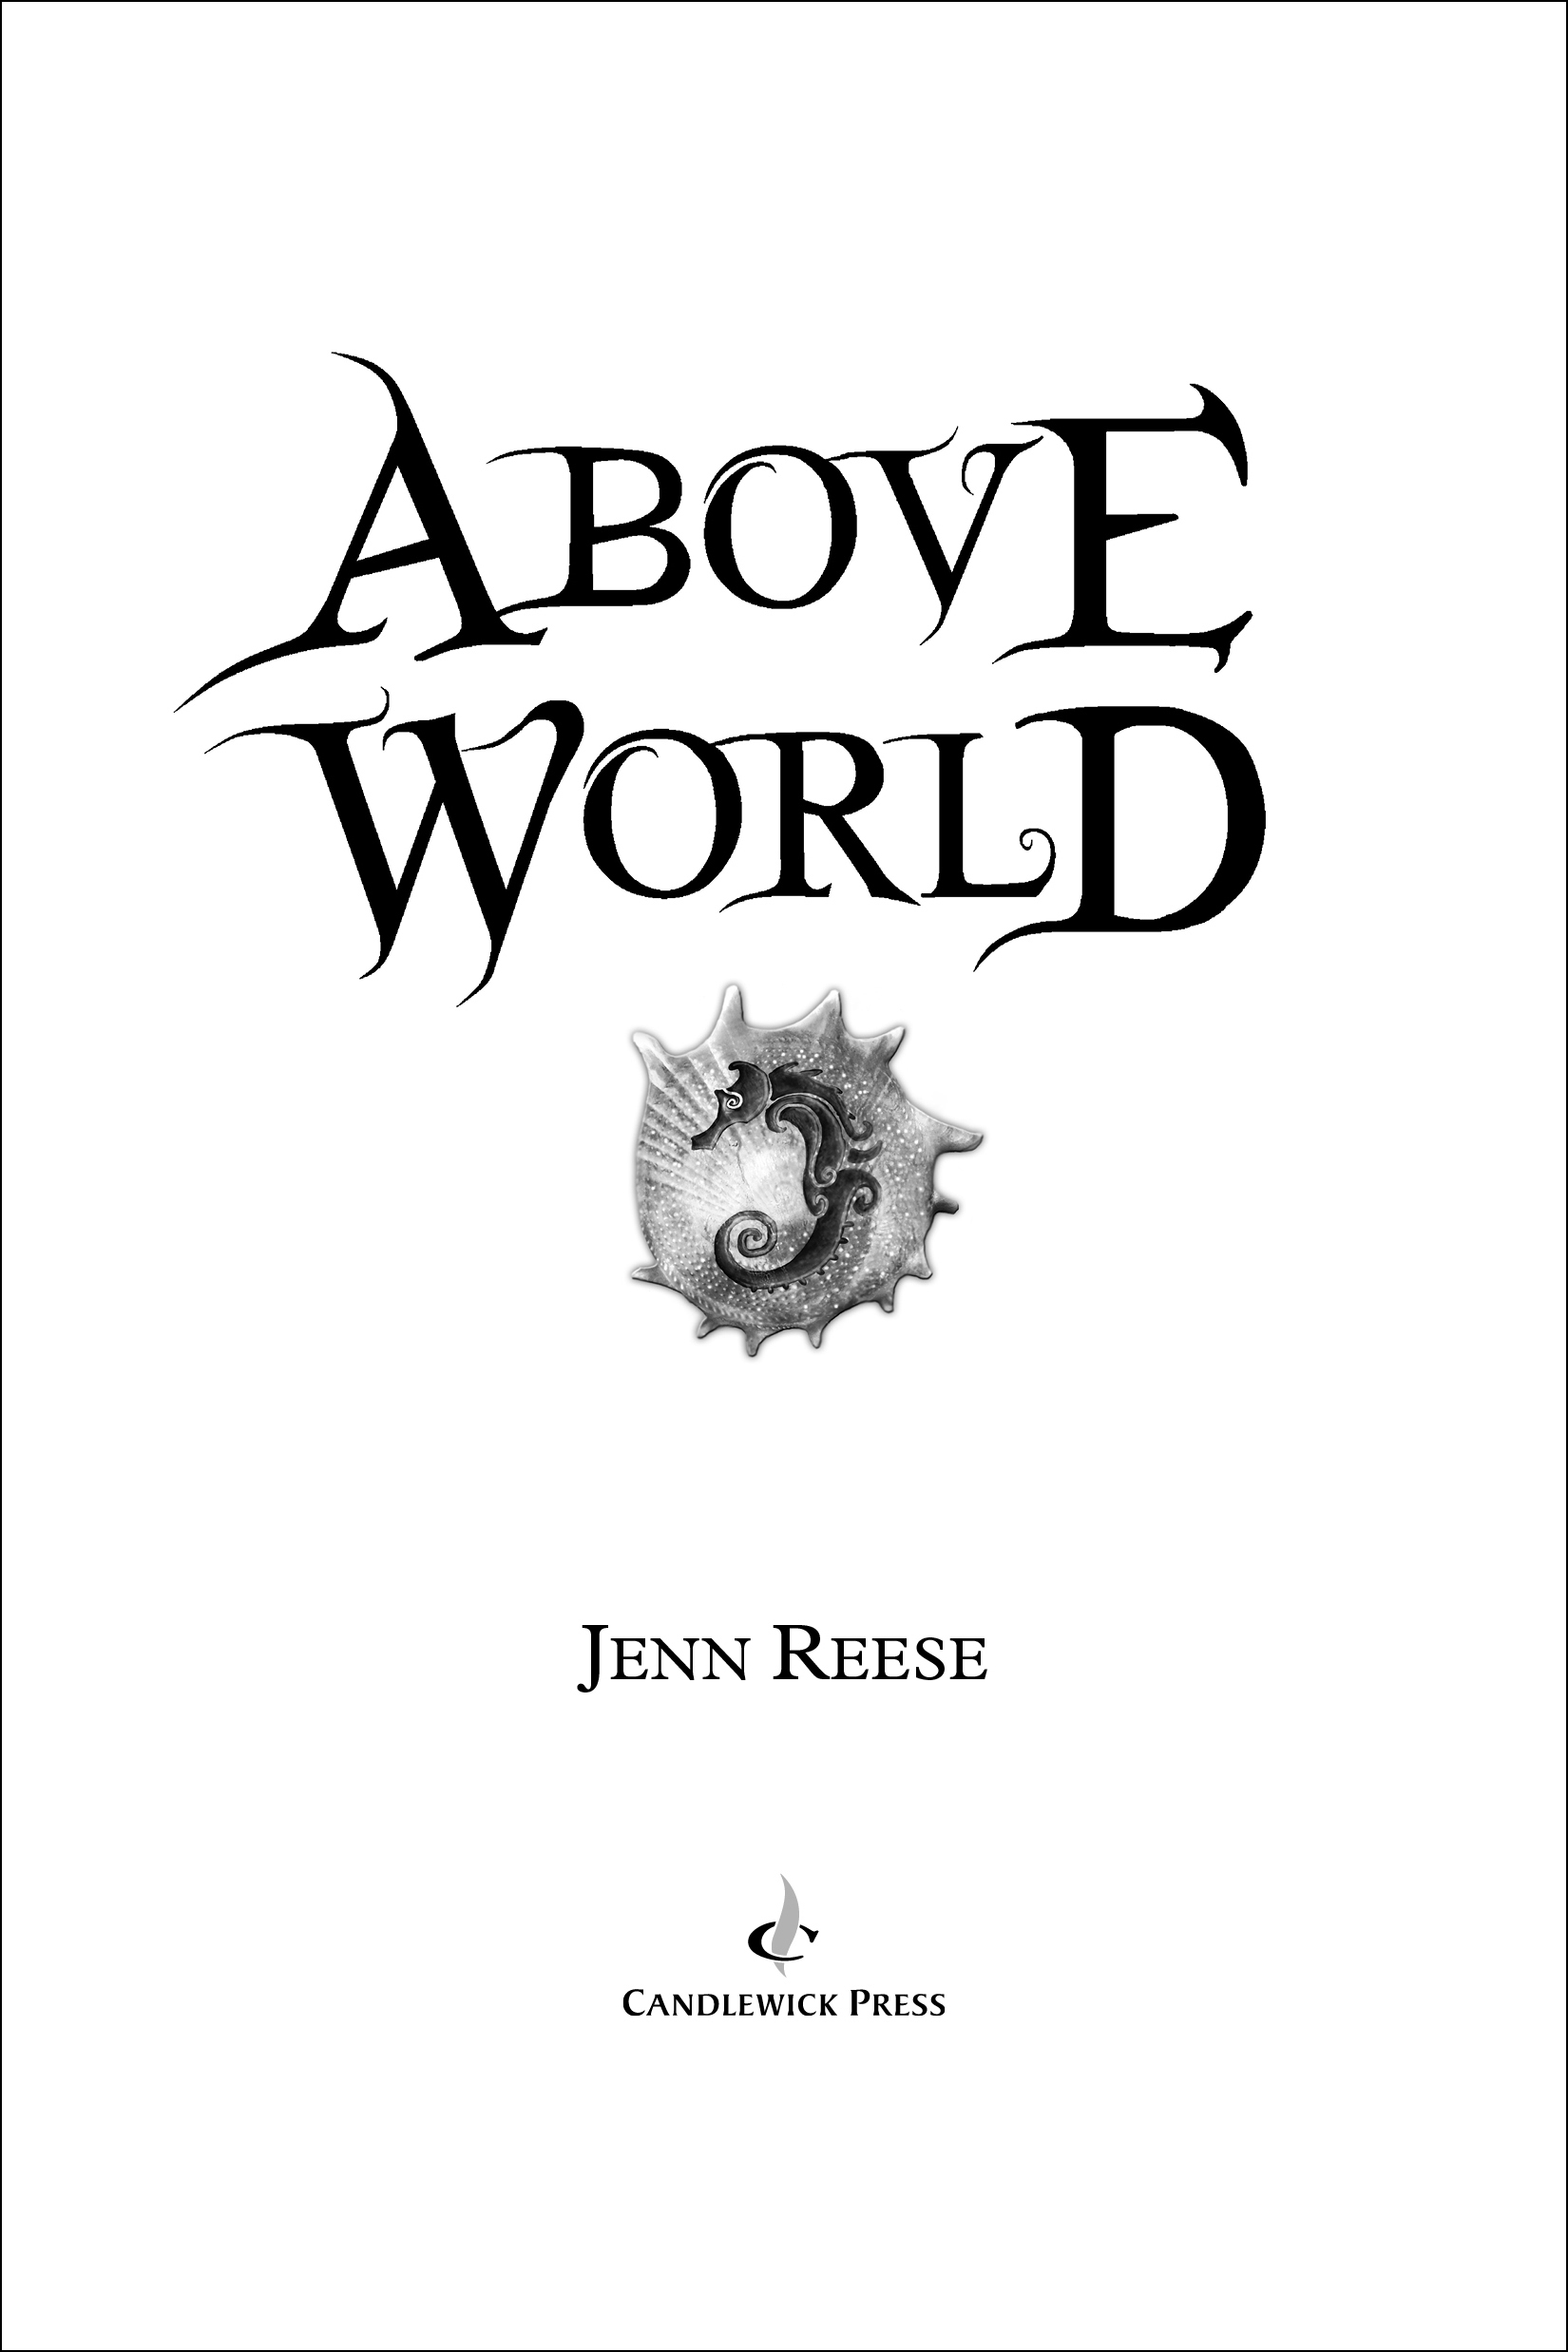 Title page for ABOVE WORLD